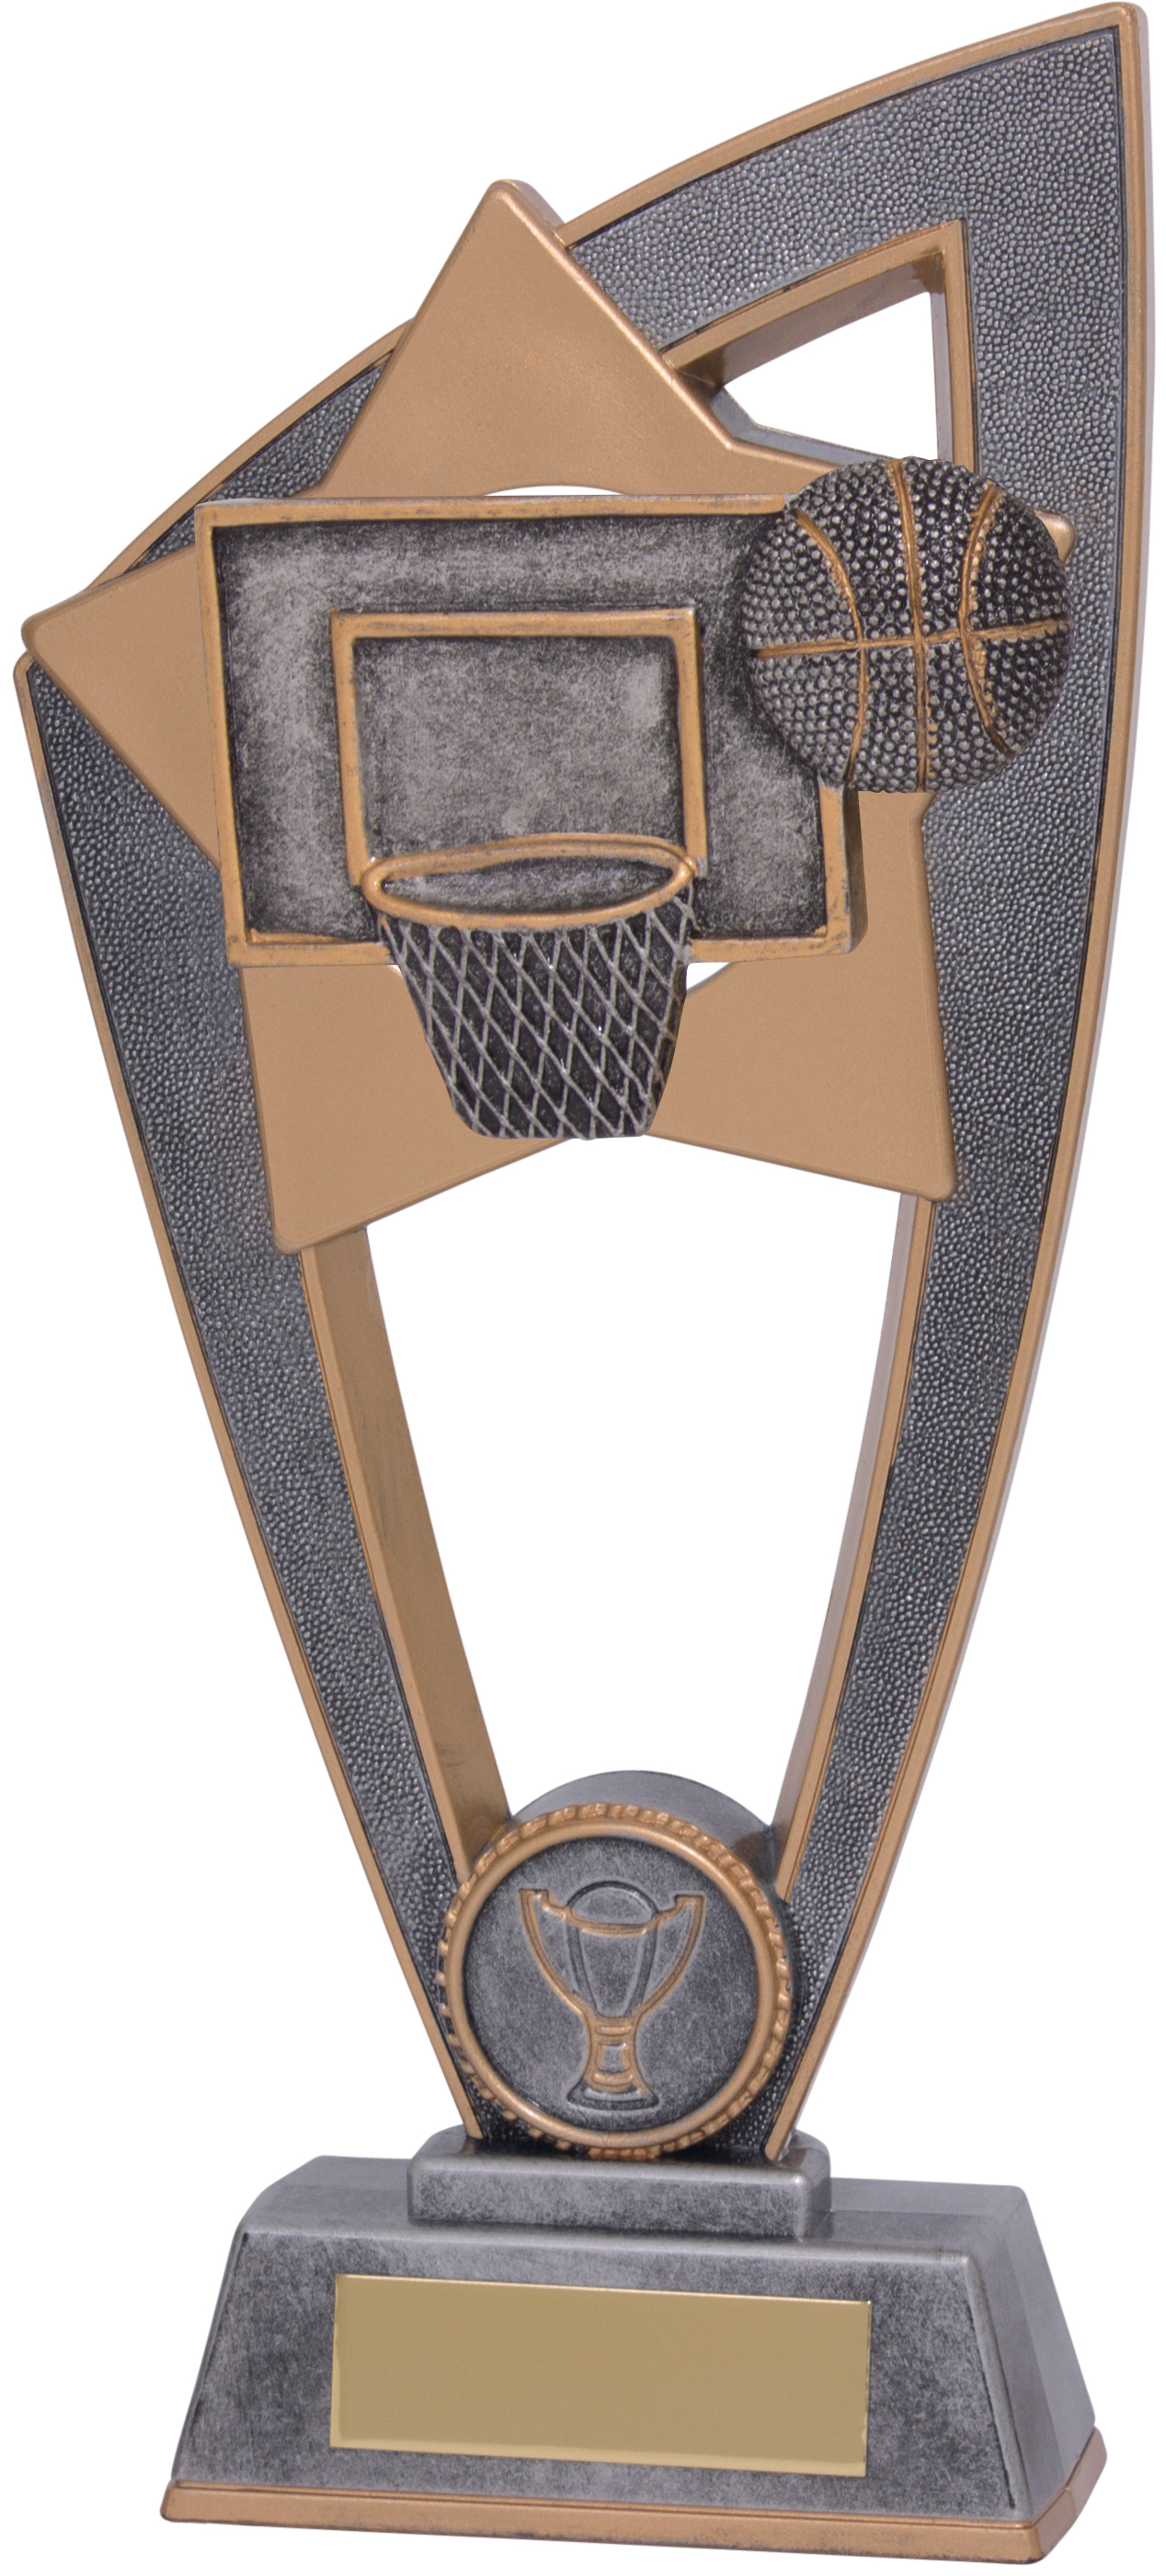 "Basketball Star Blast Trophy 18cm (7"")"